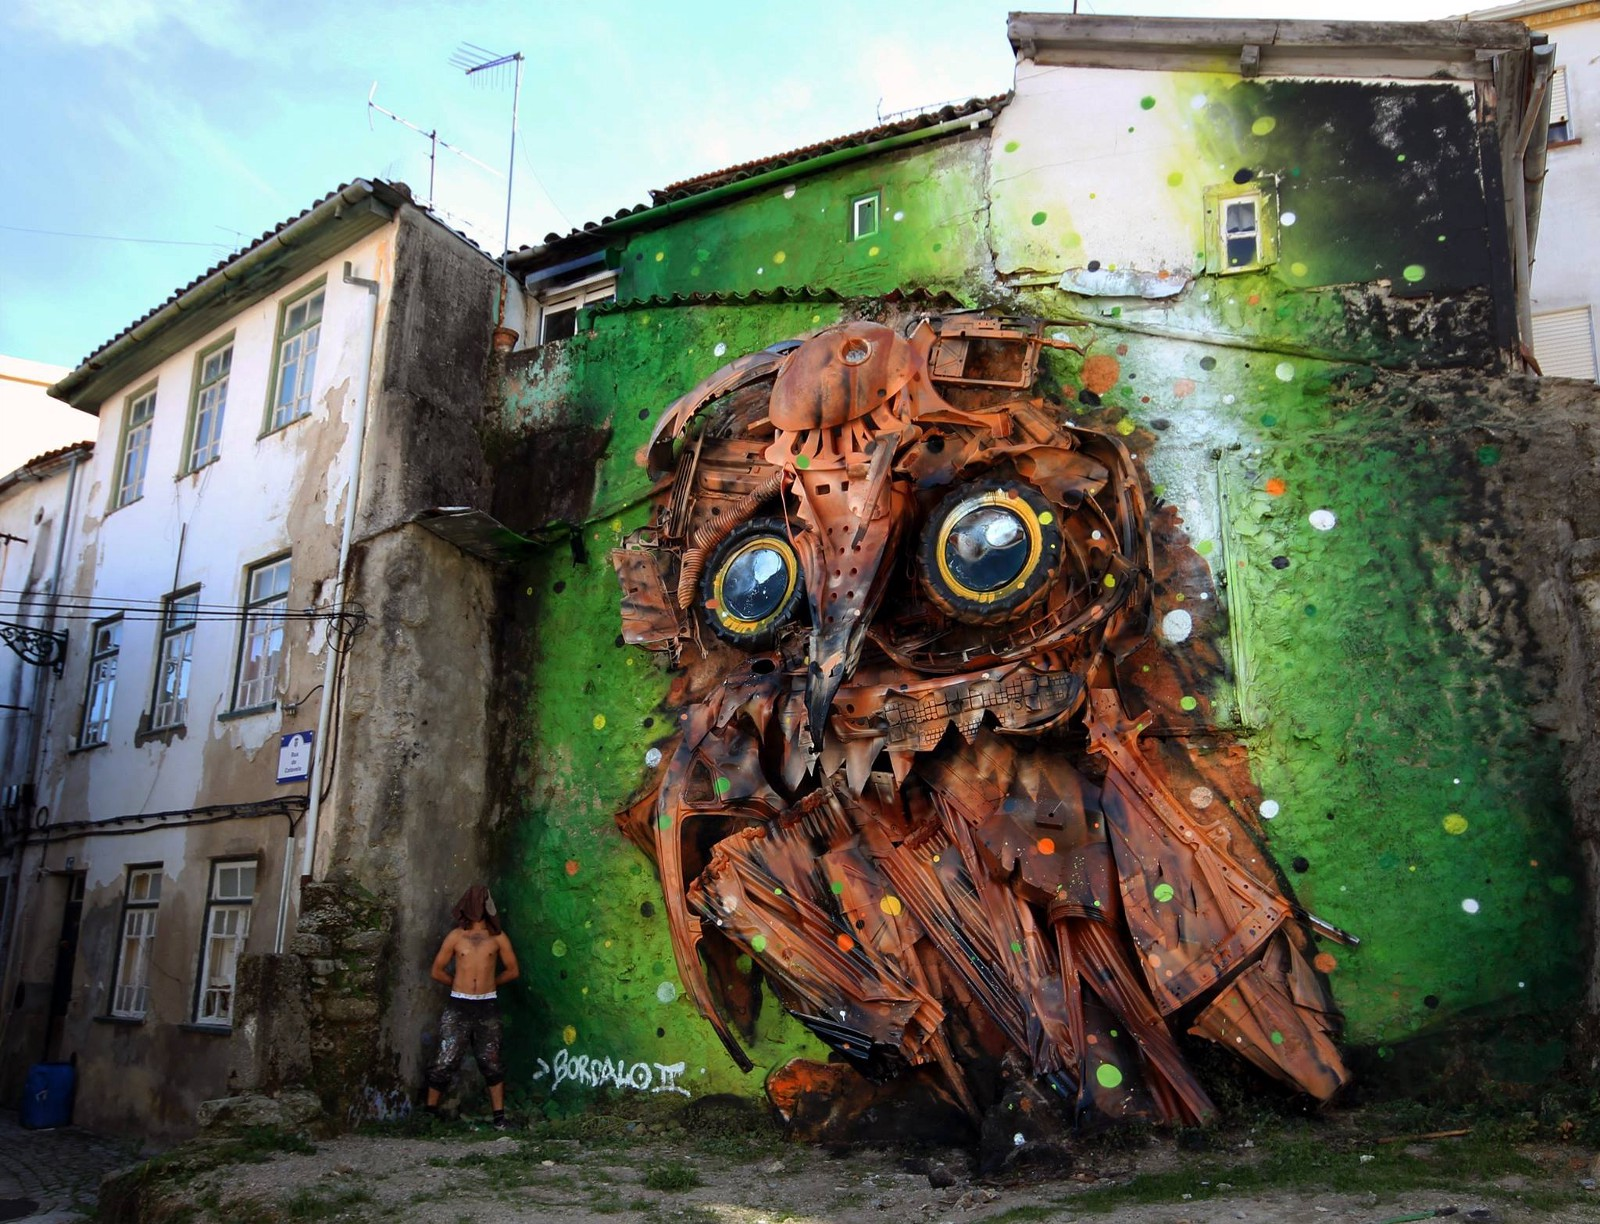 Bordalo ii 3d art installation using recycled tires and discarded materials